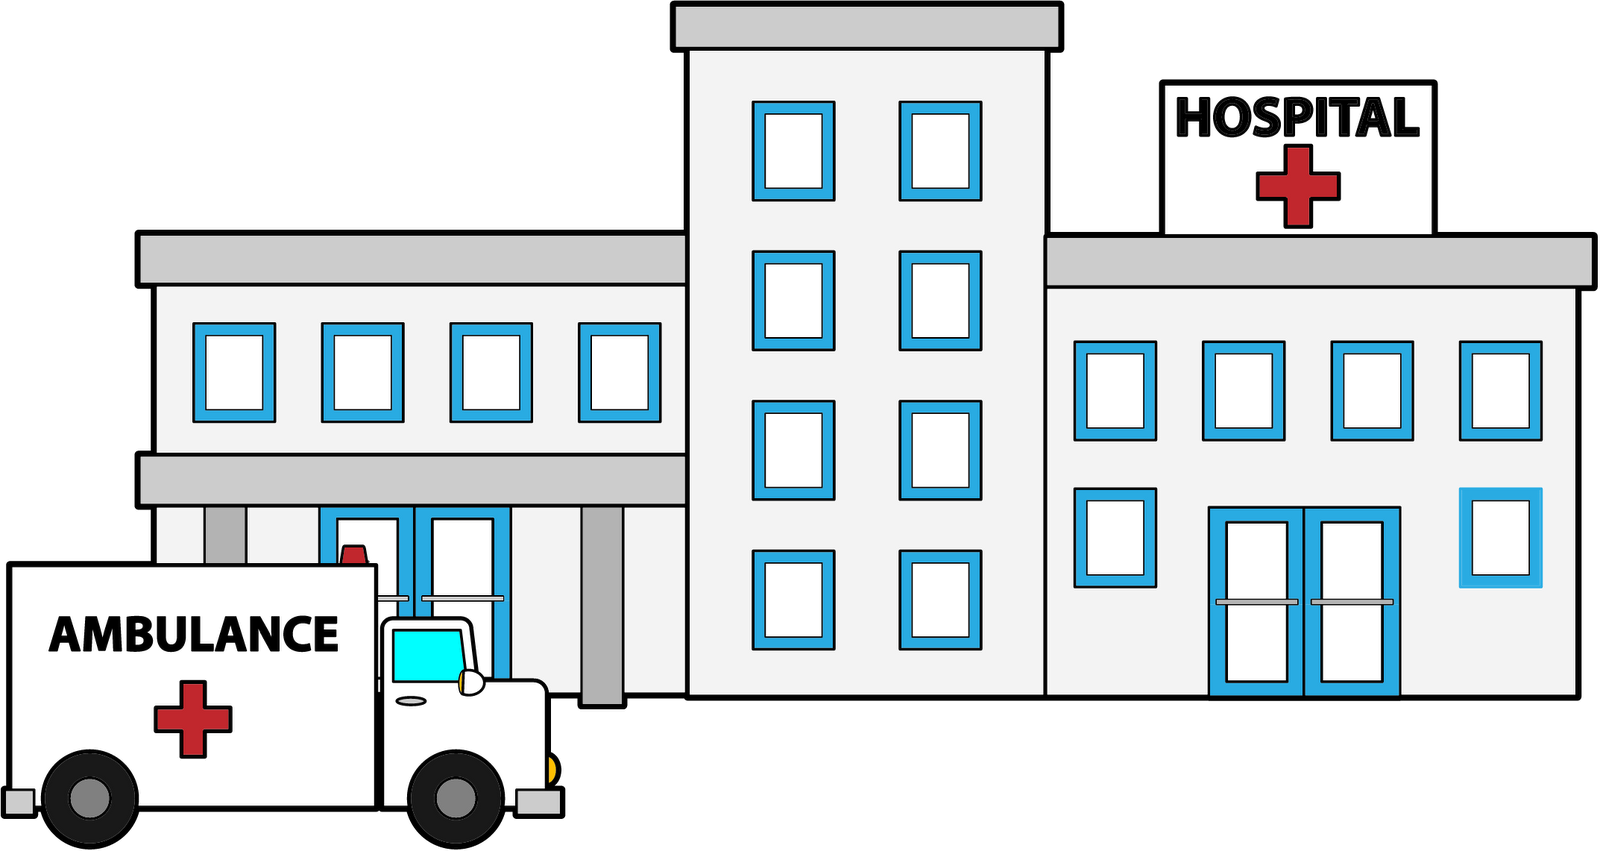 Hospital images free clipart clip black and white Free Hospital Cliparts, Download Free Clip Art, Free Clip Art on ... clip black and white